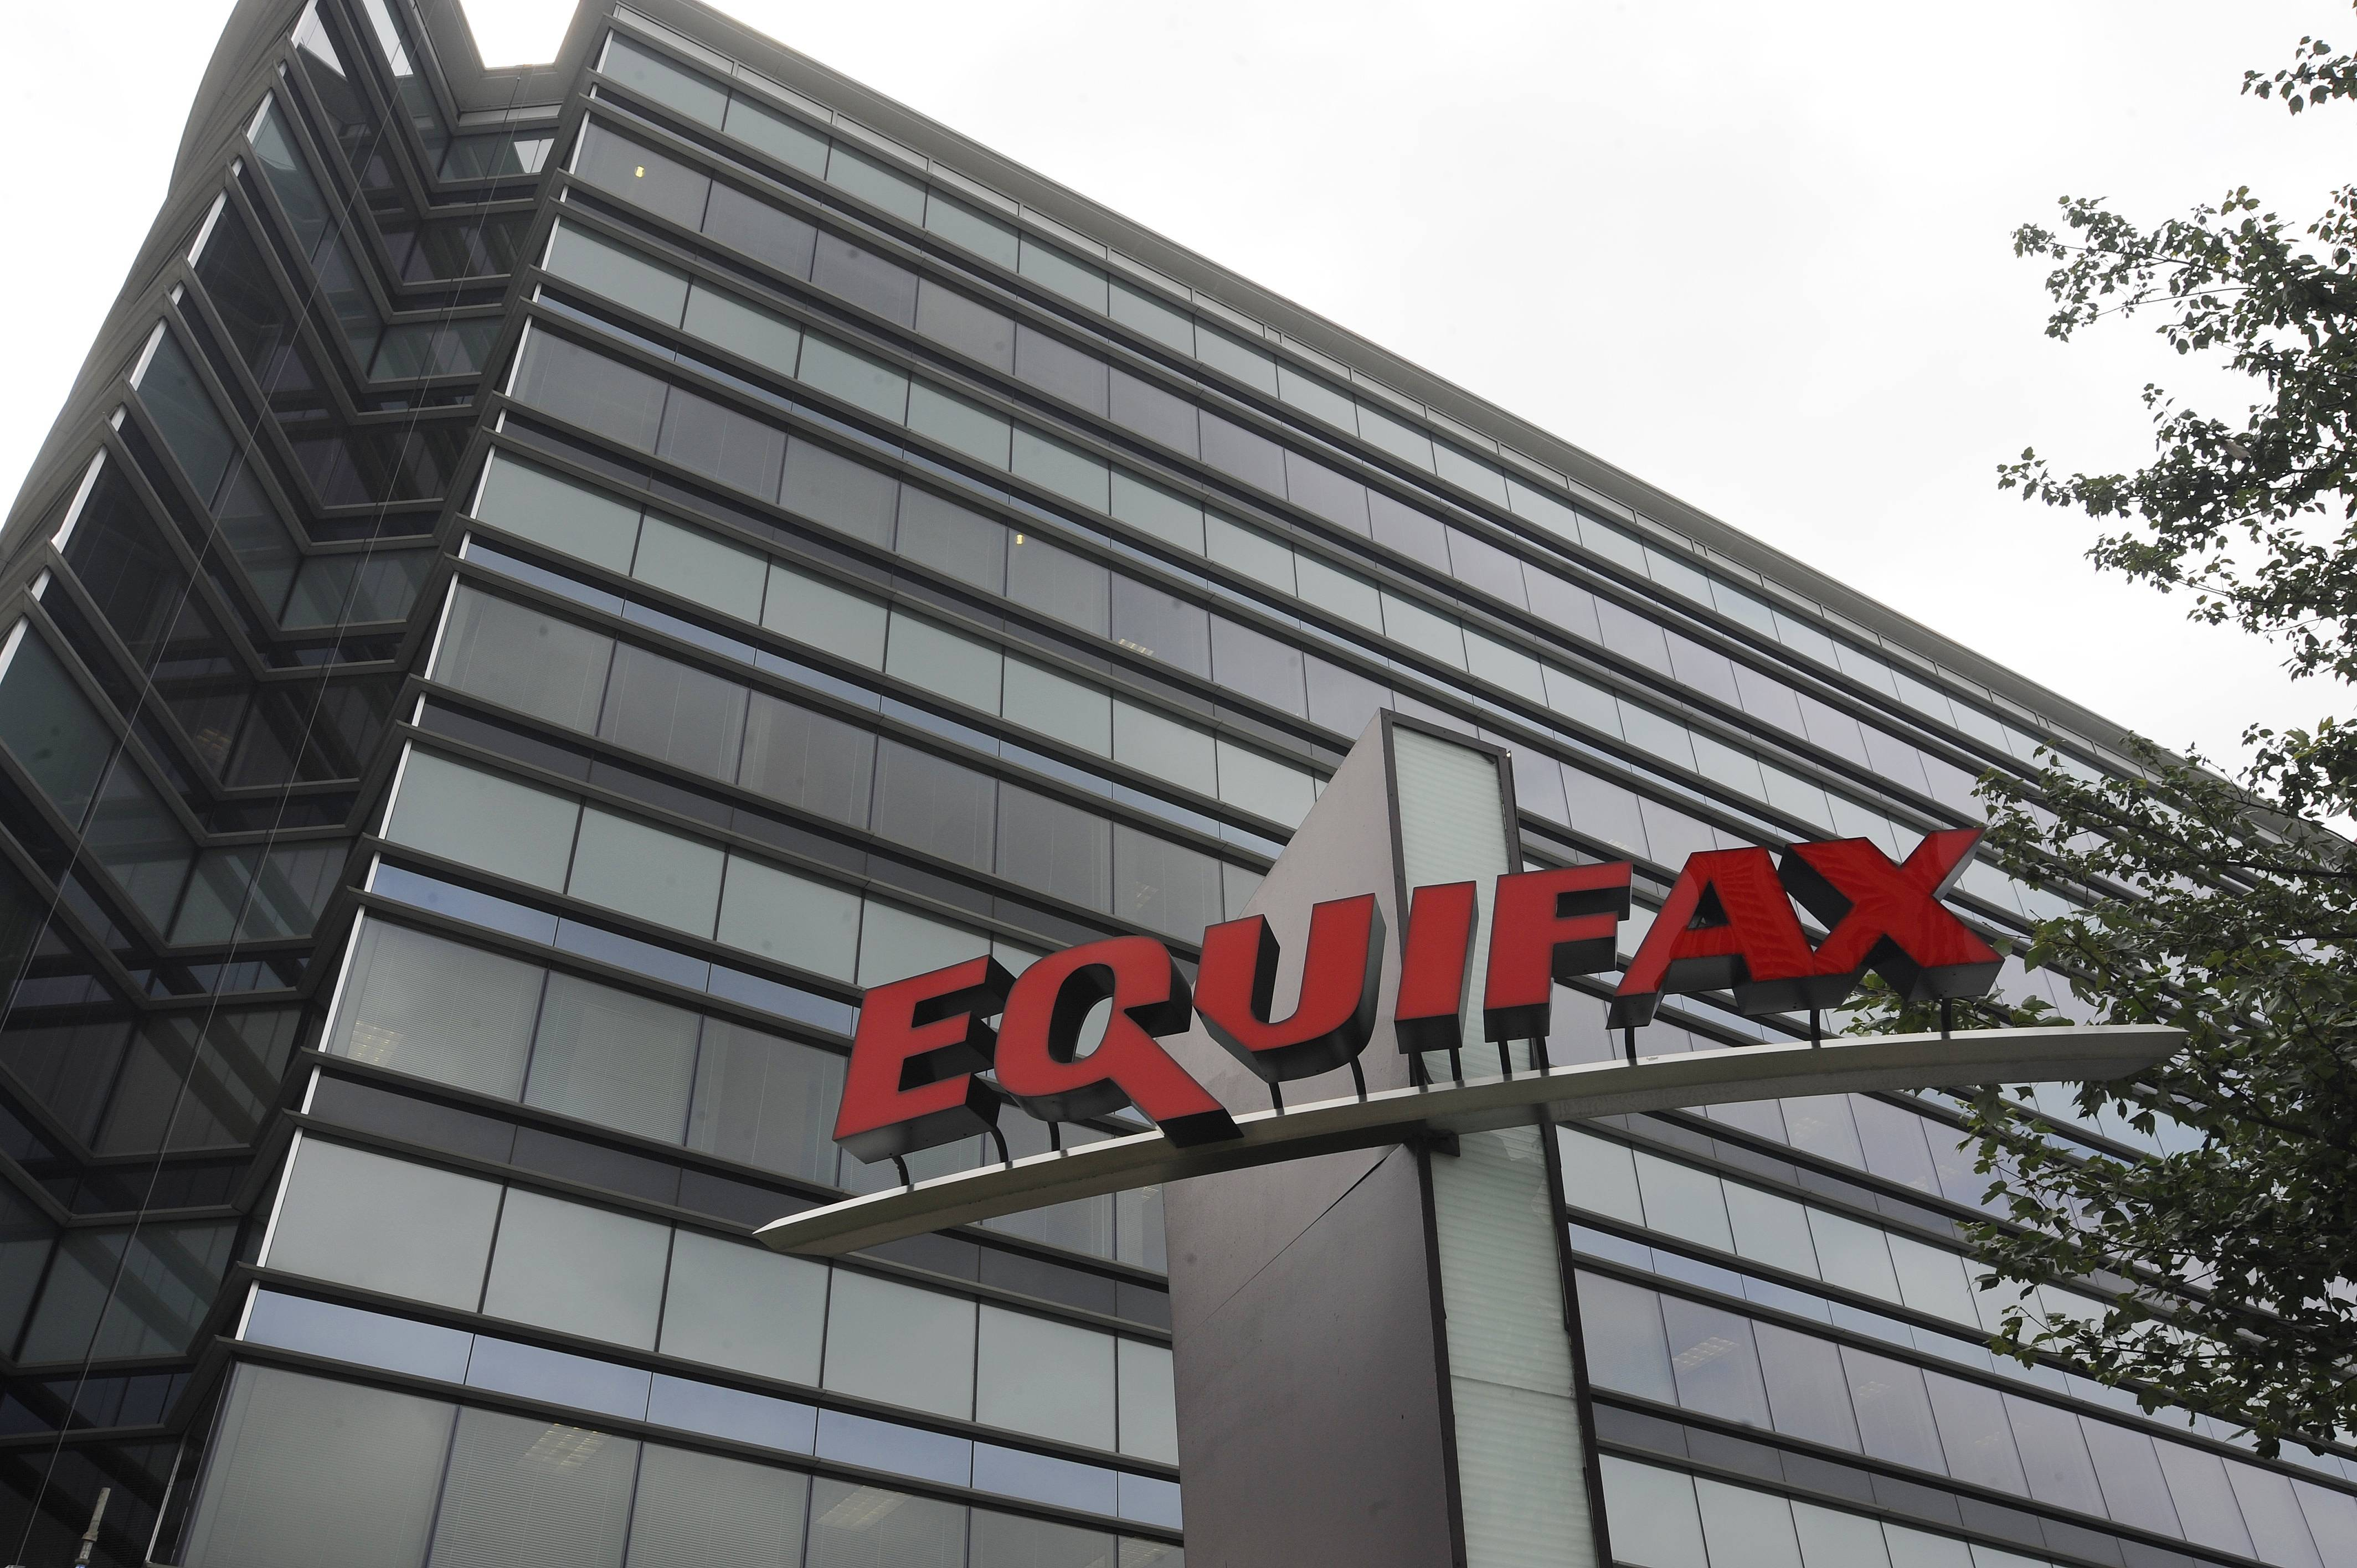 Analysis: Three big questions Equifax has not answered